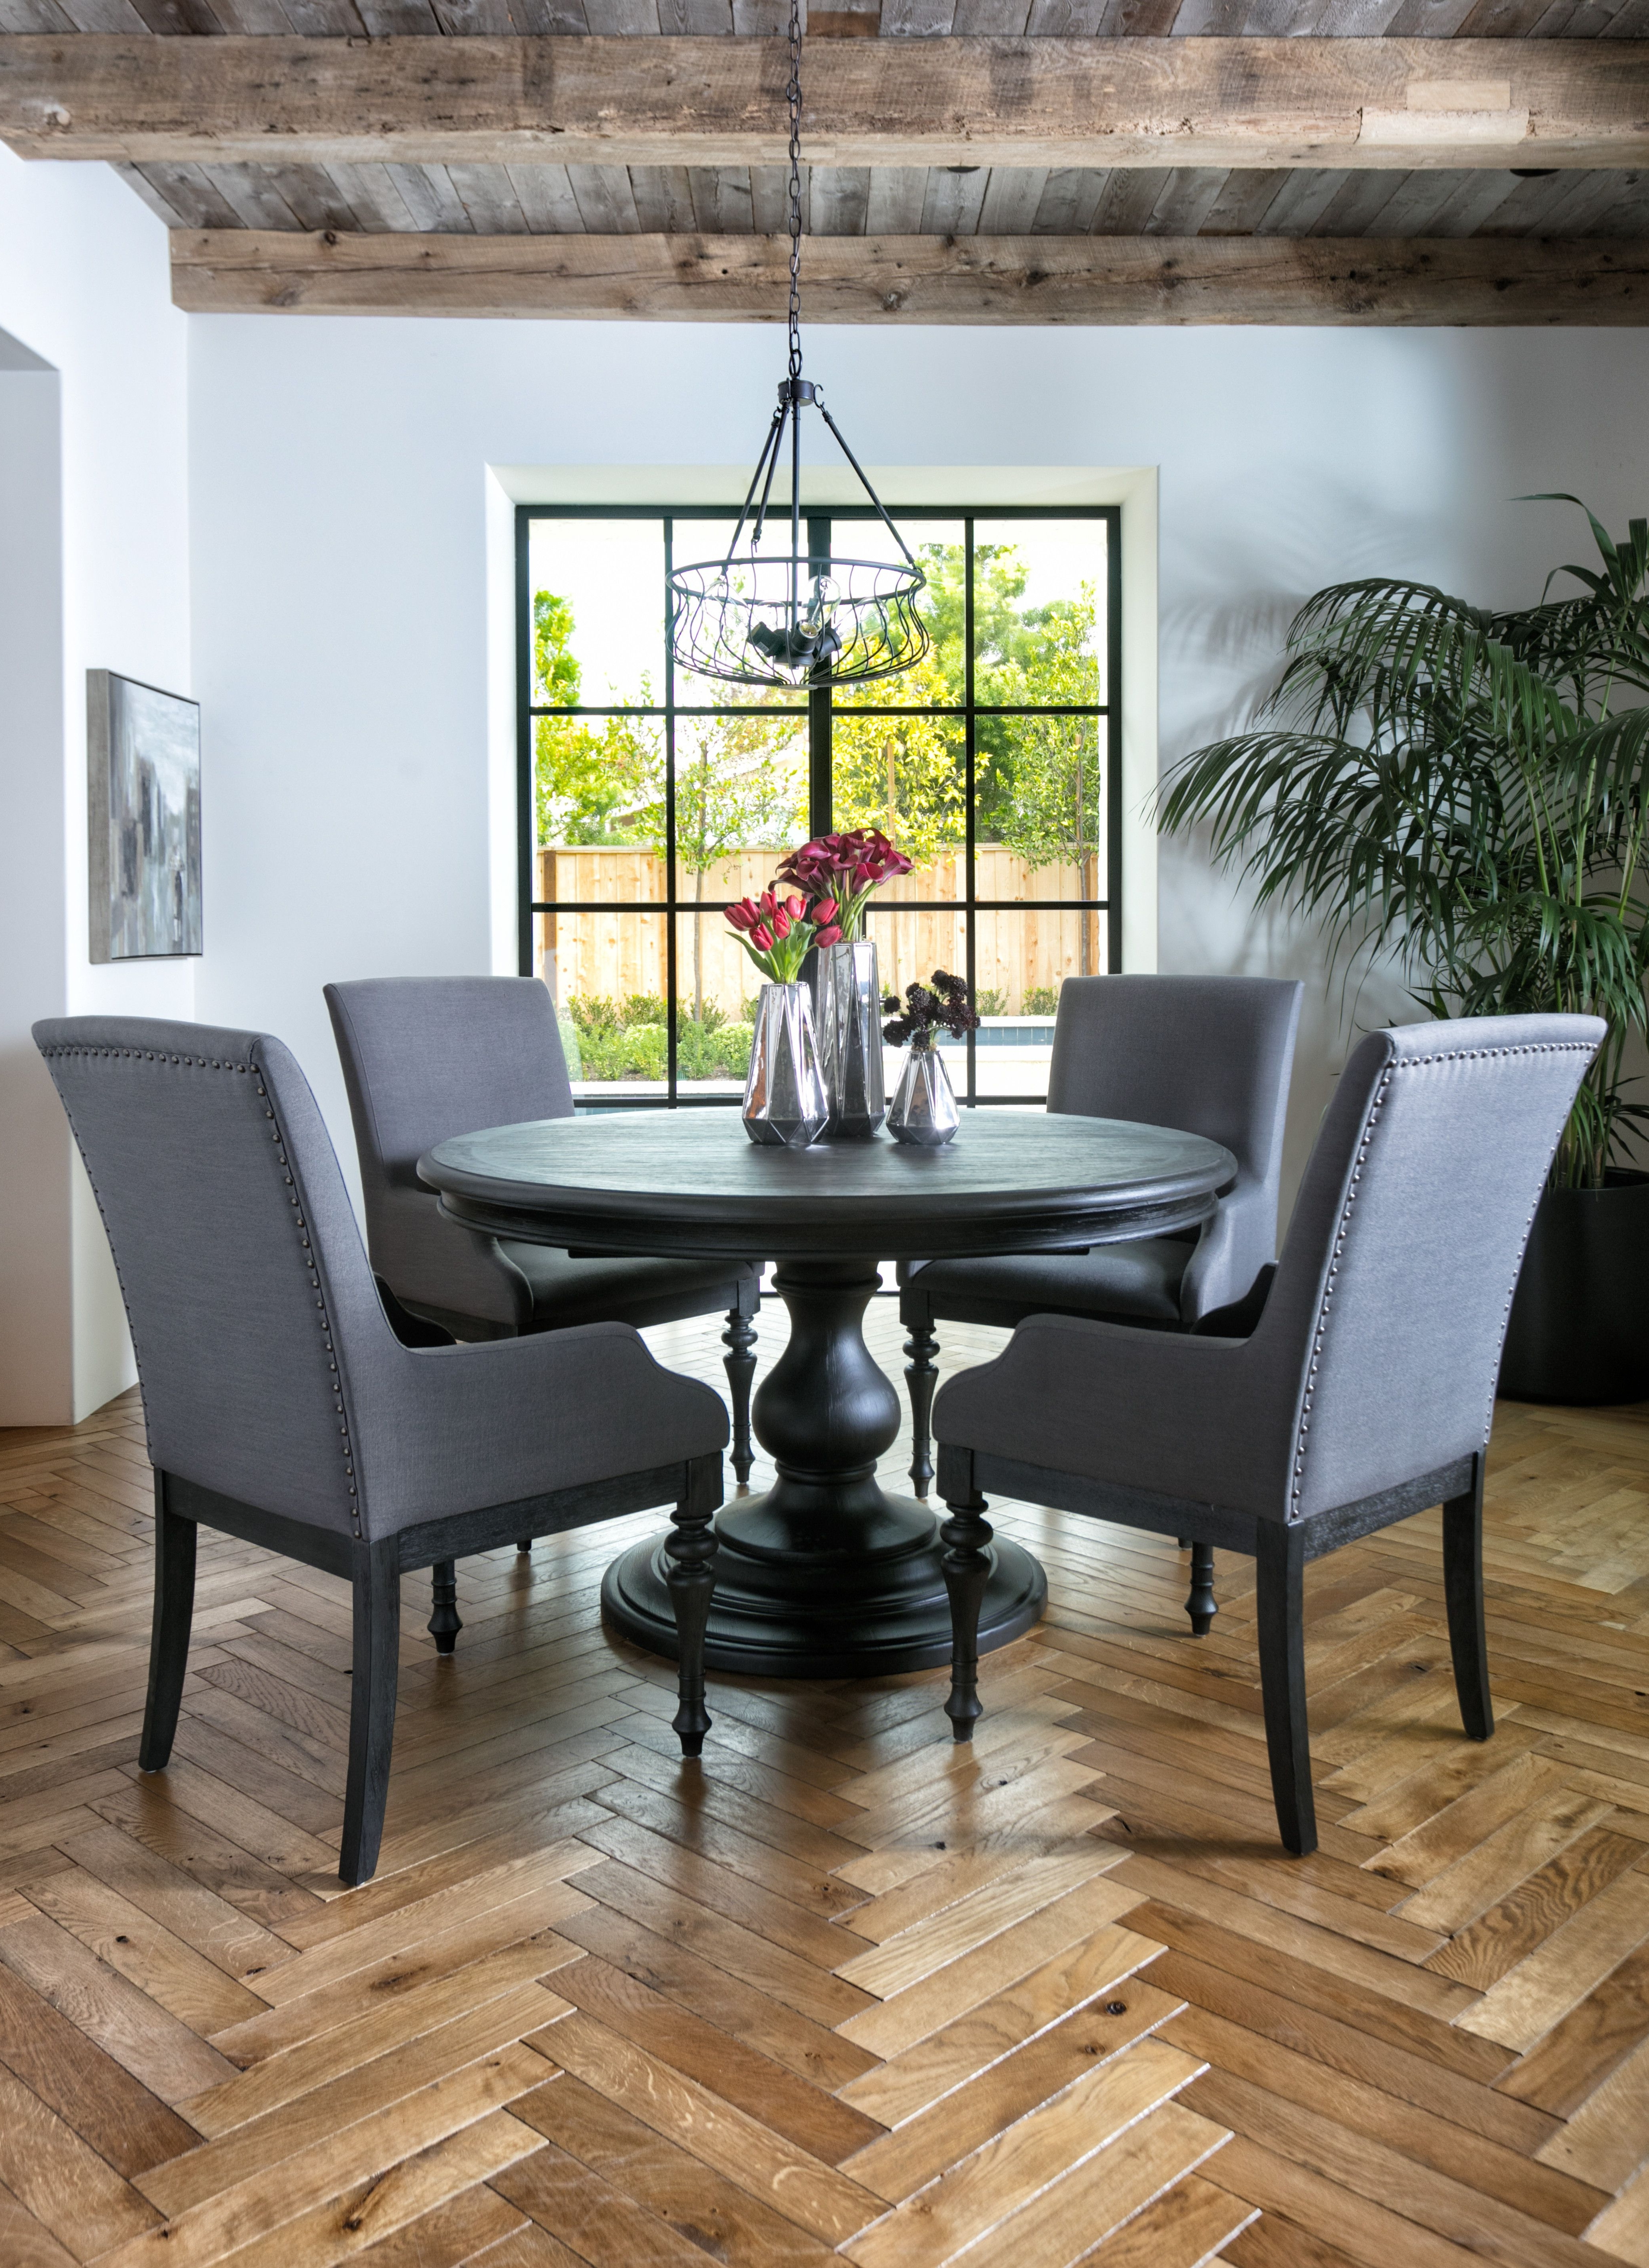 Most Popular Caira Black 5 Piece Round Dining Set With Diamond Back Side Chairs In Caira Black Round Dining Tables (View 16 of 25)